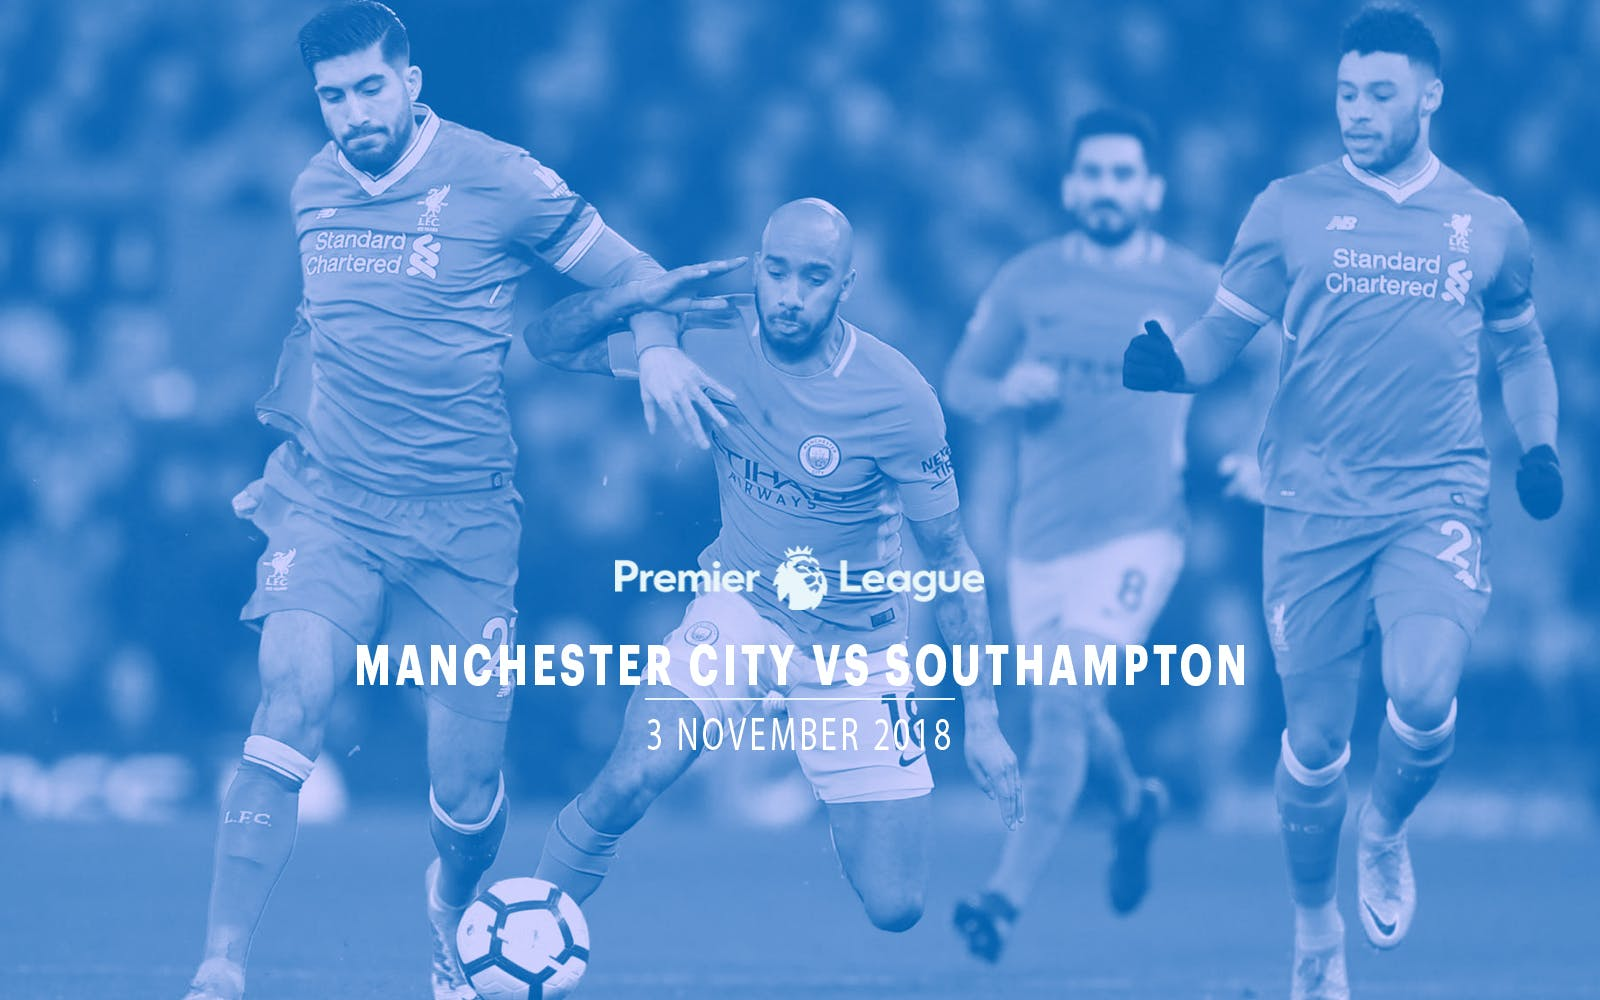 Manchester City vs Southampton - 3rd Nov'18